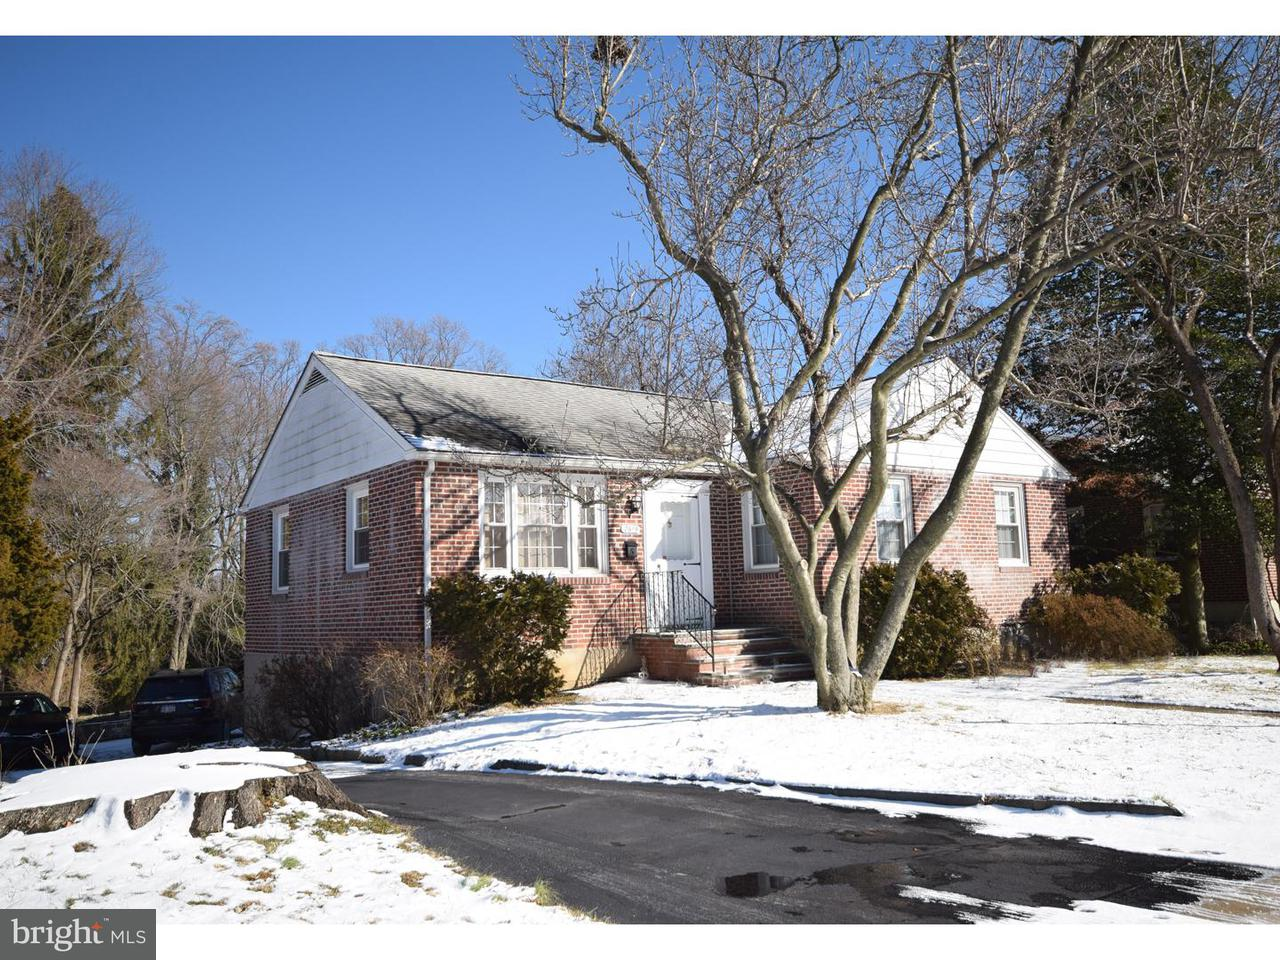 2619  Radcliffe Broomall, PA 19008